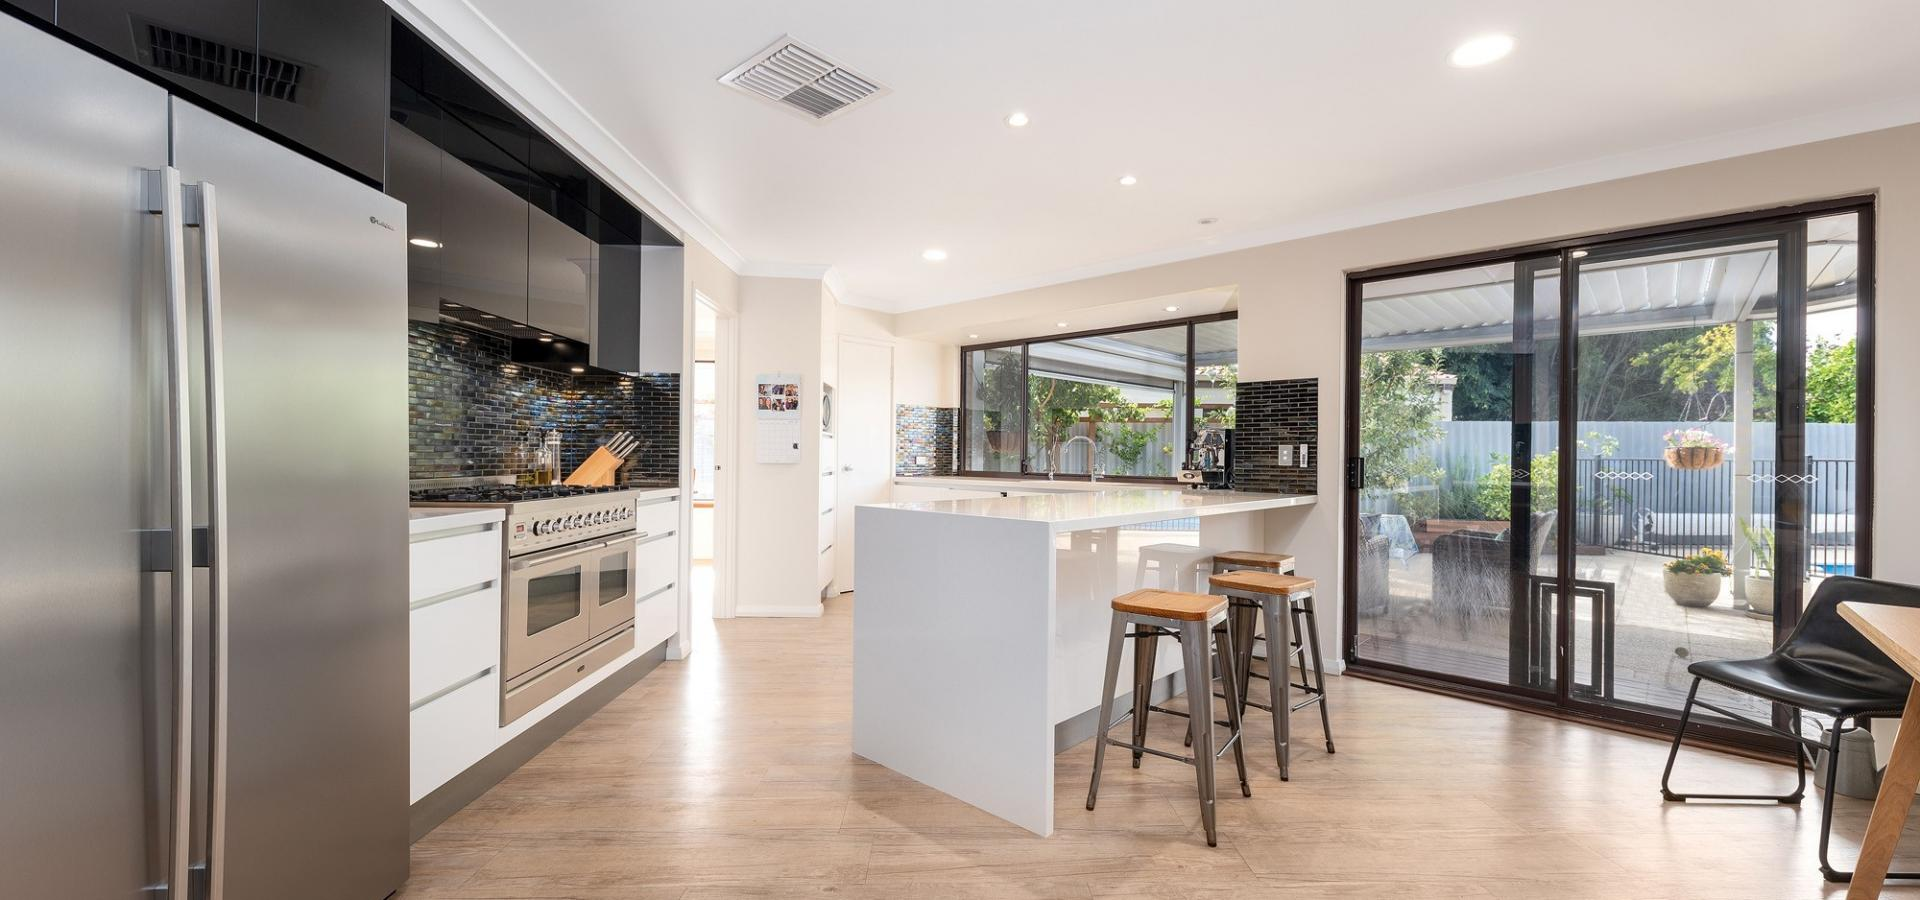 AMAZING FULLY RENOVATED OPEN PLAN FAMILY HOME!